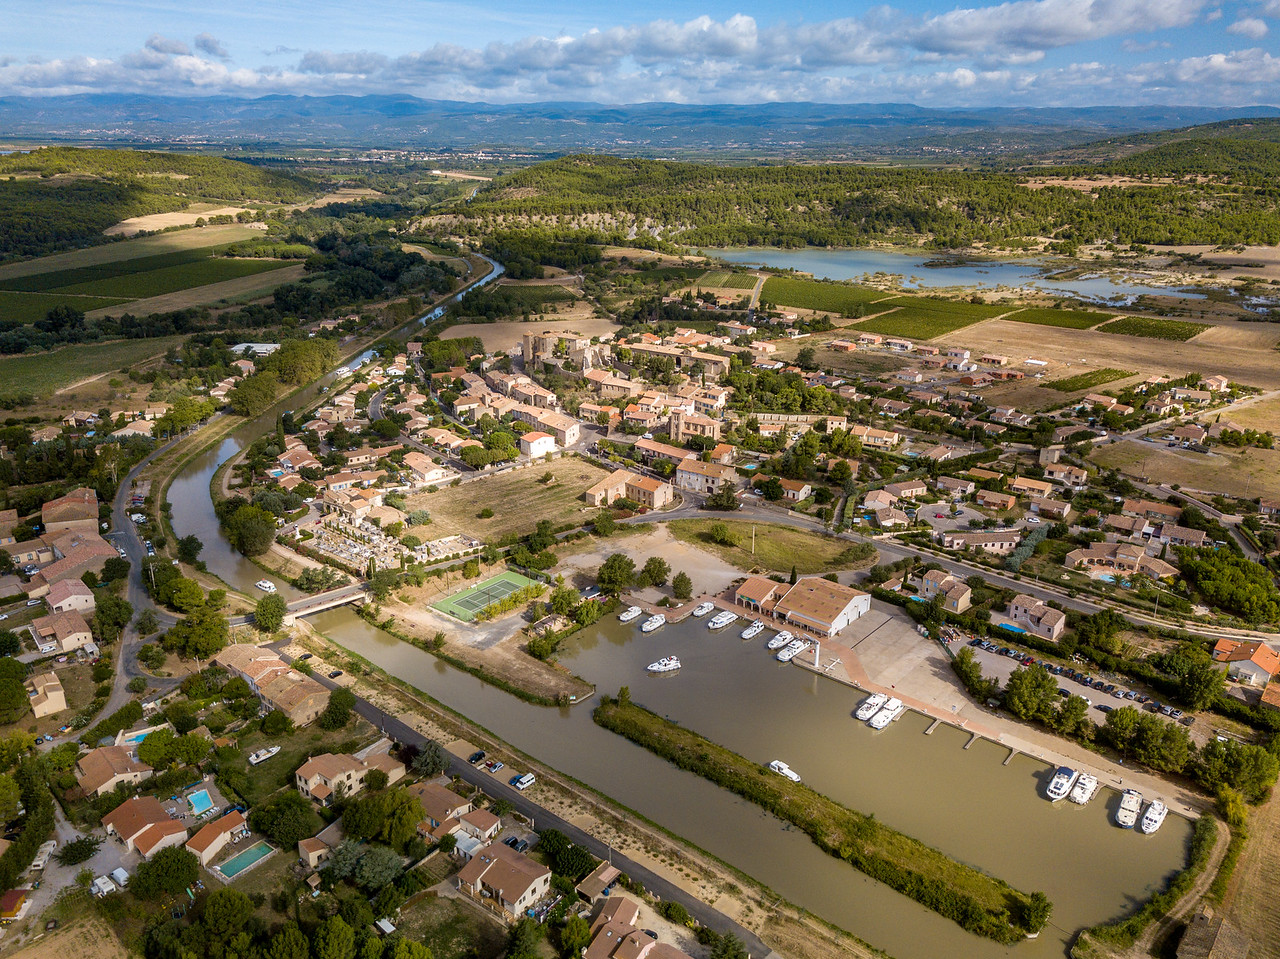 Drone View of Our Parking Spot in Argens-Minervois on the Canal du Midi